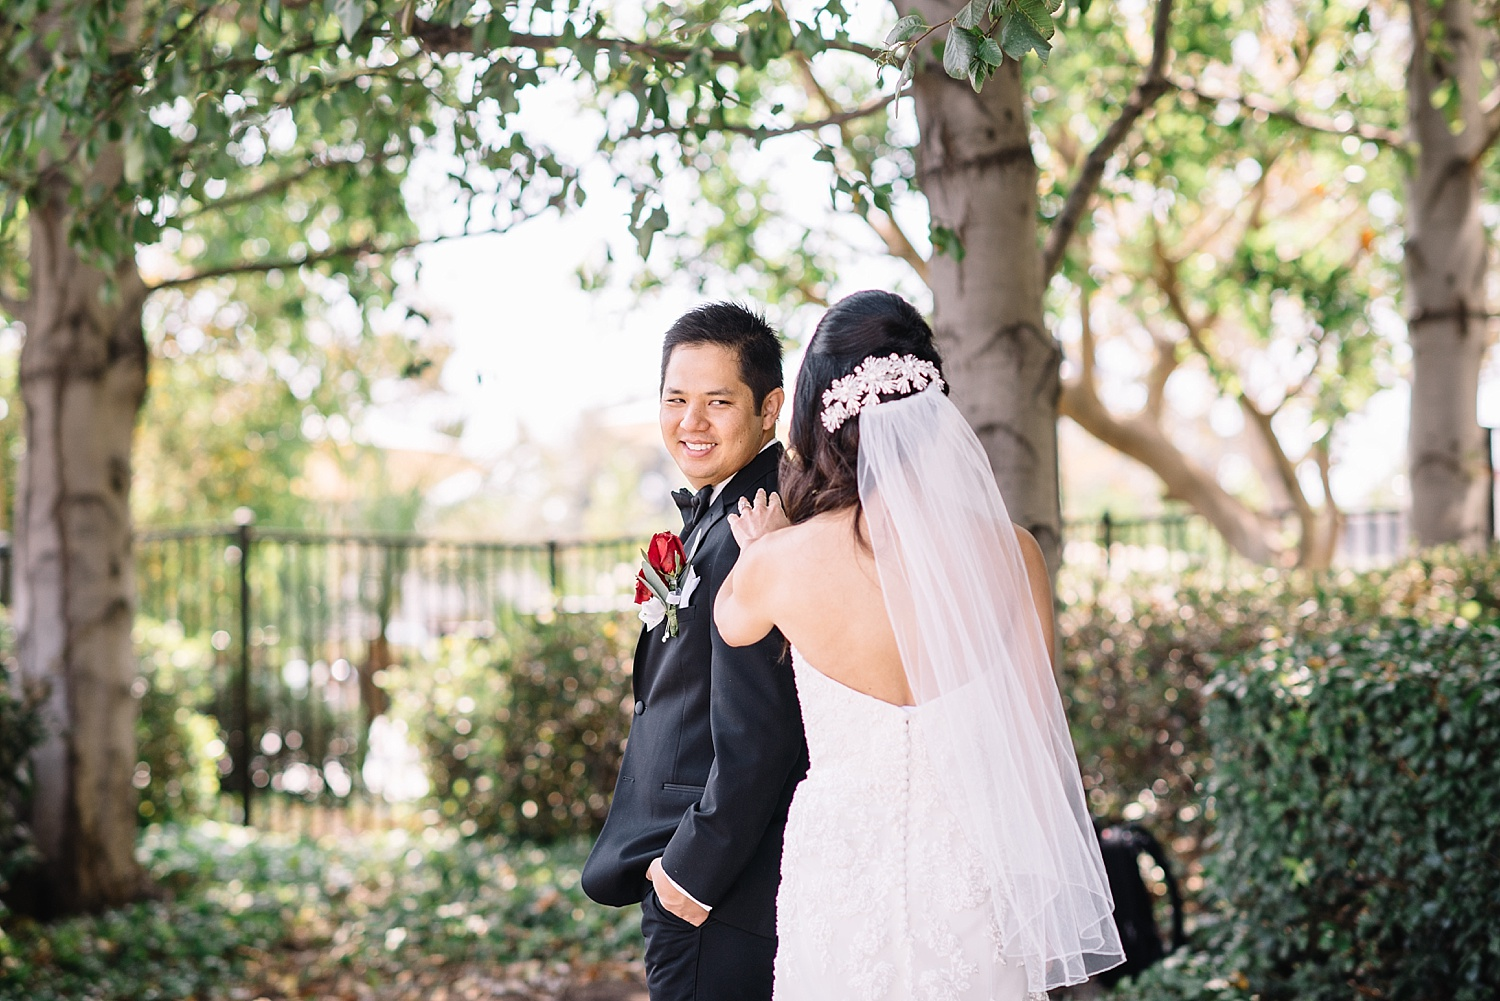 jennifer-jayn-photography-santa-ana-the-estate-on-second-wedding_0005.jpg